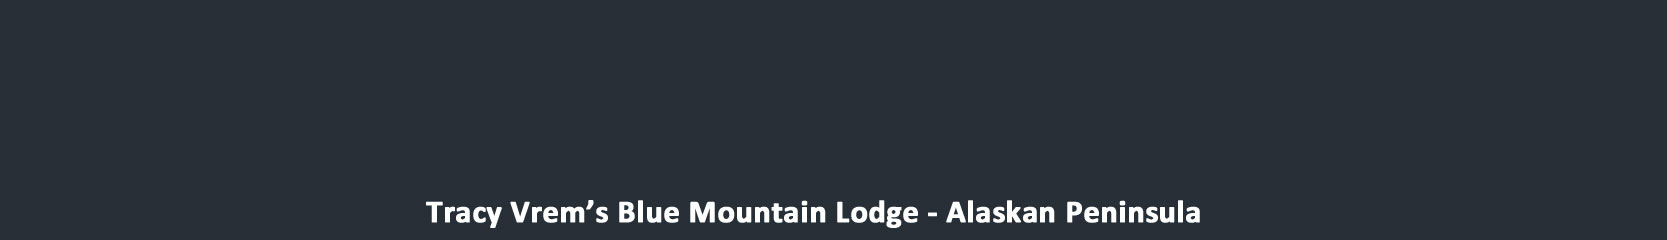 Blue Mt. Lodge